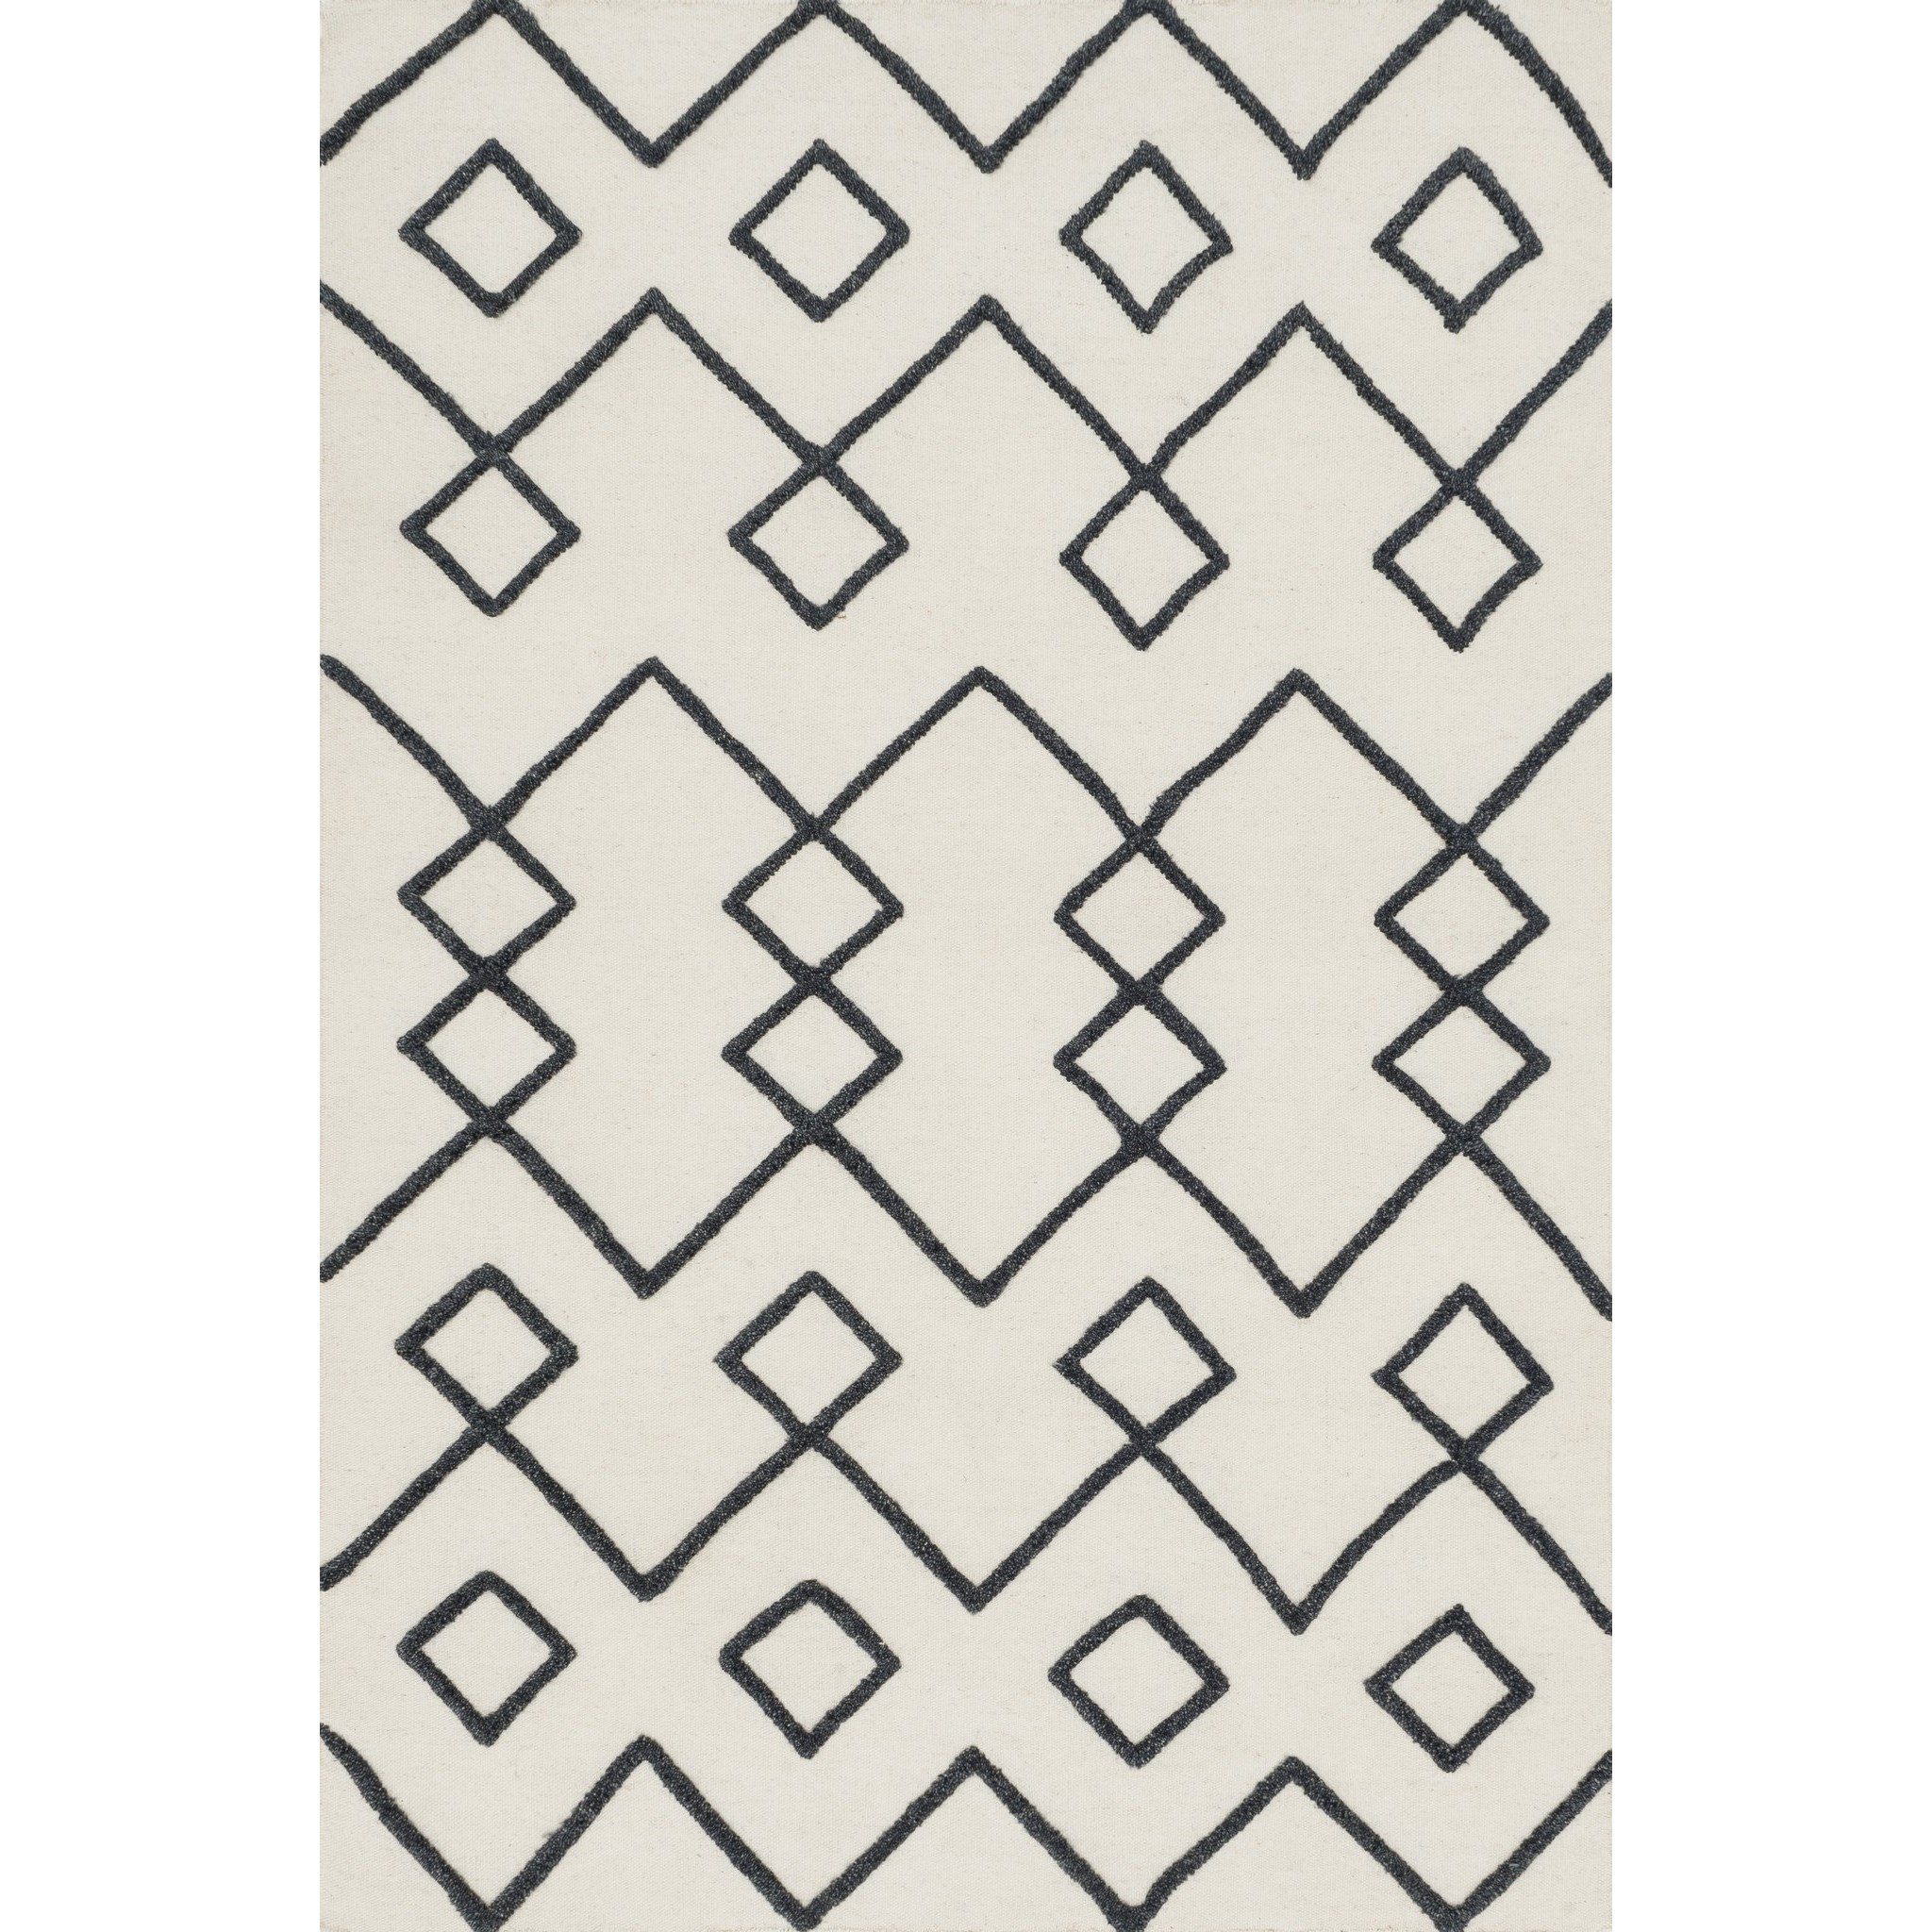 """Adler 9'-3"""" X 13' Area Rug by Loloi Rugs at Virginia Furniture Market"""